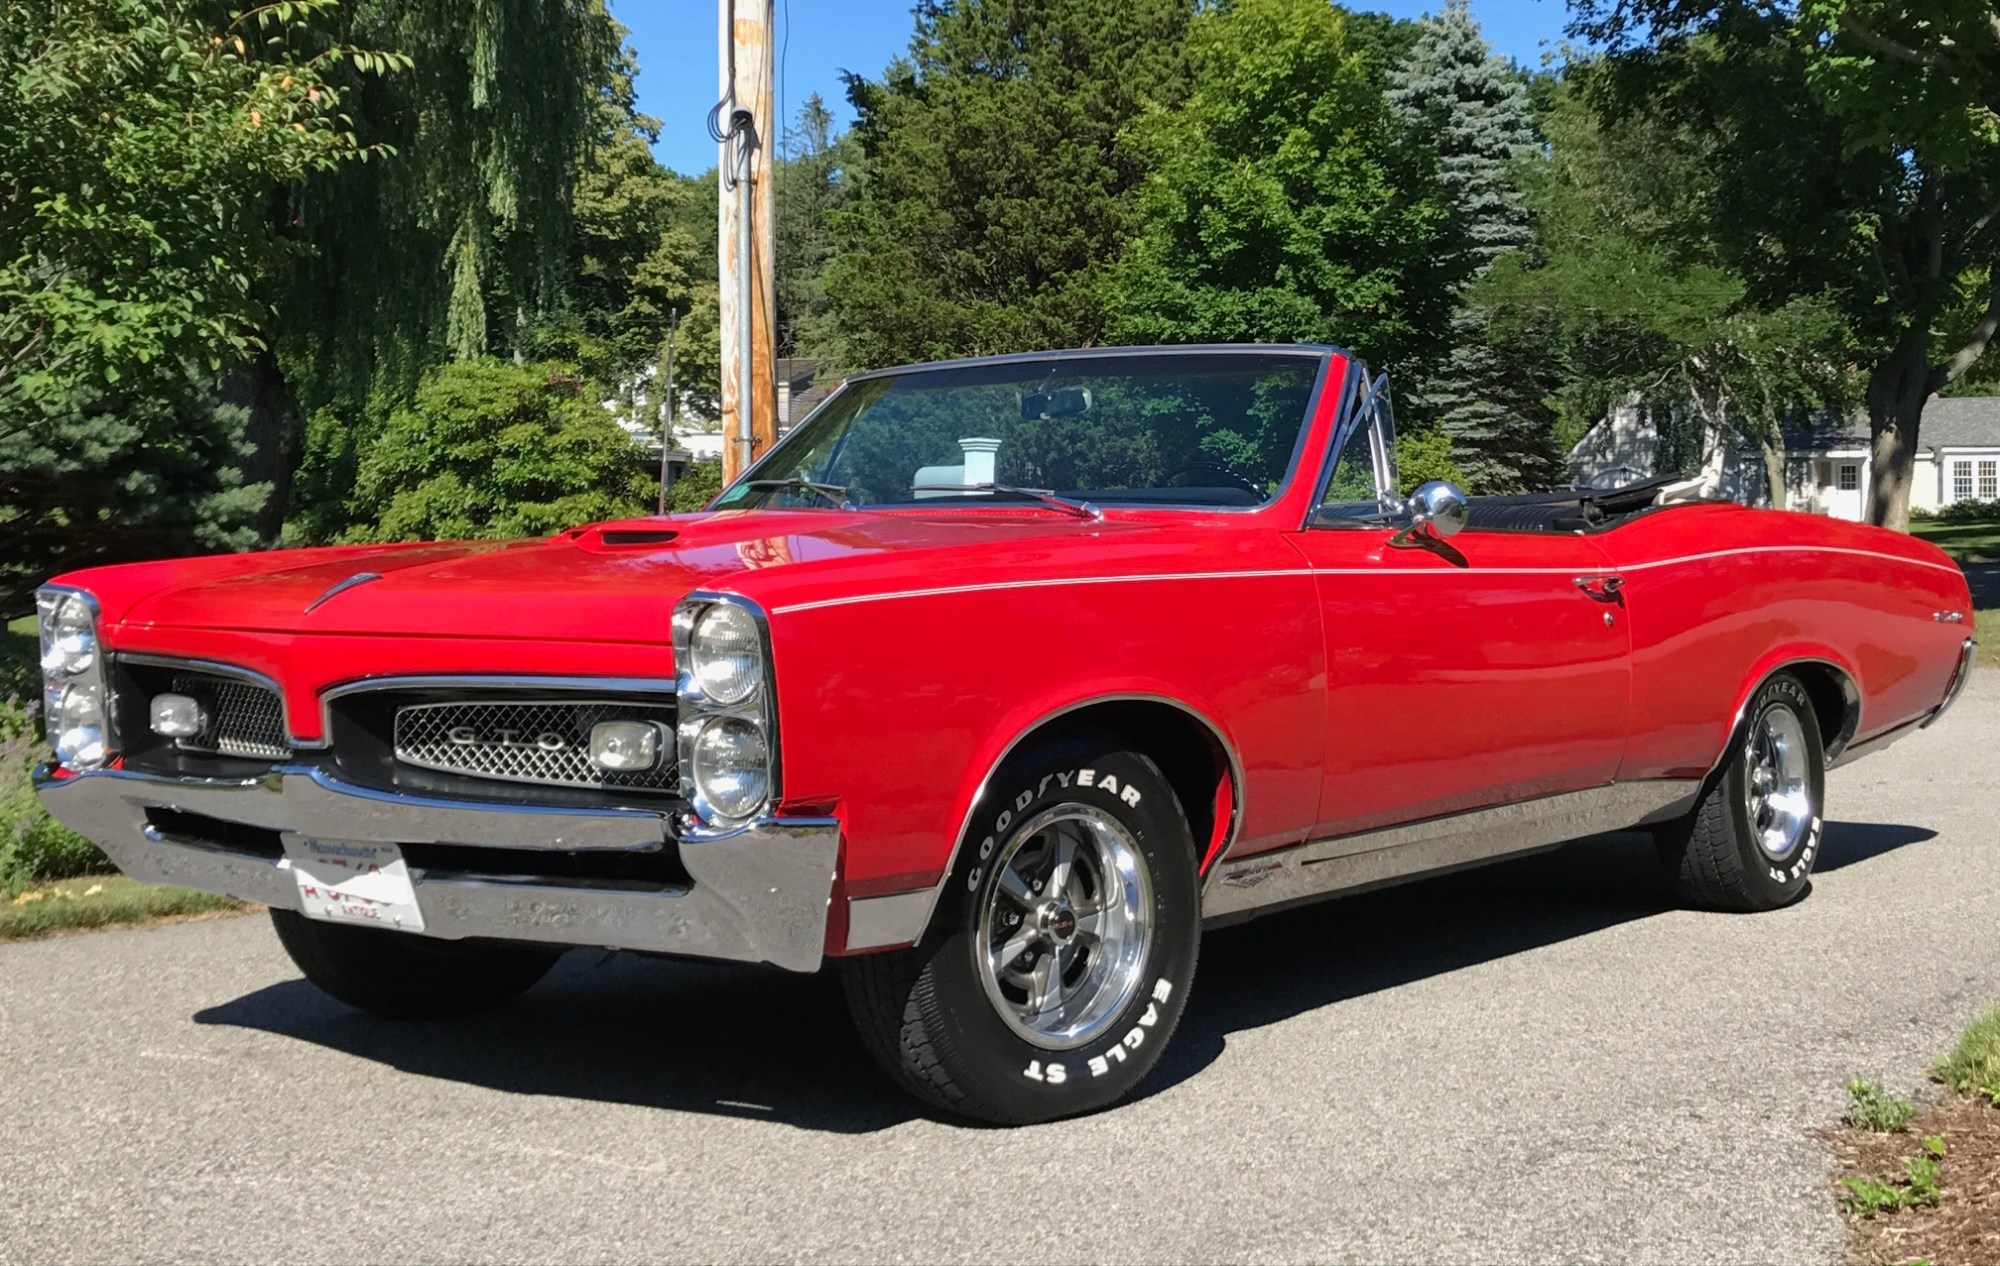 hight resolution of 1967 pontiac gto convertible 4 speed for sale on bat auctions sold for 28 250 on october 15 2018 lot 13 186 bring a trailer